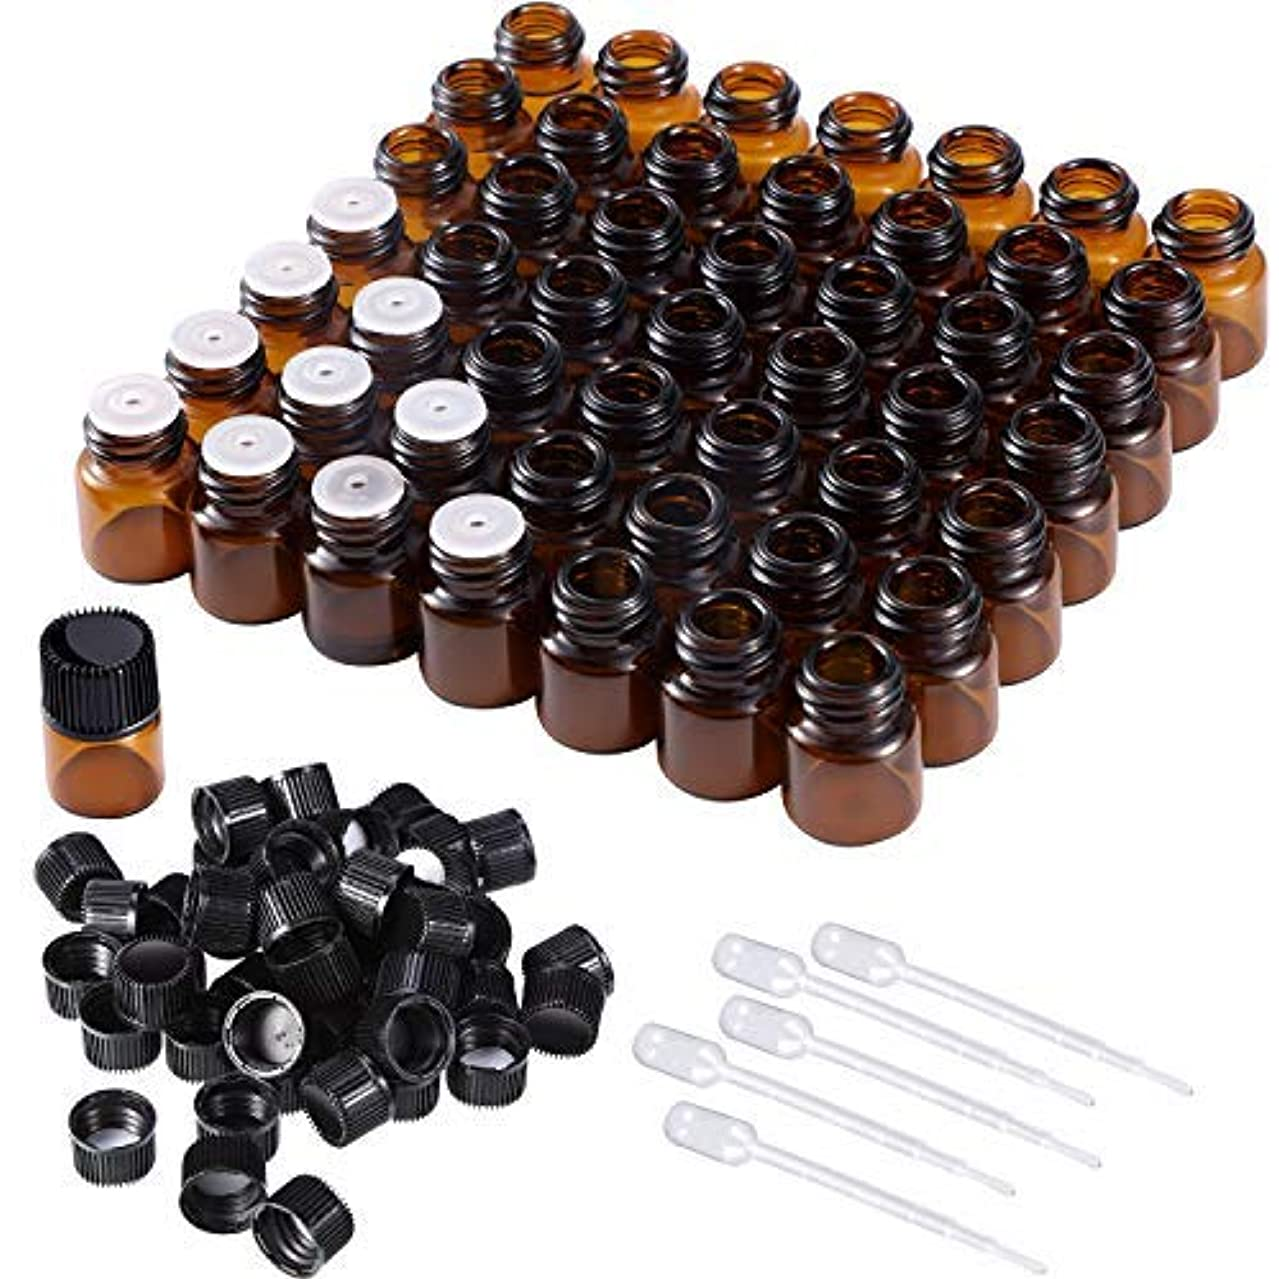 緊張虚弱付添人50 Pieces 1 ml Mini Amber Glass Vial Bottles Essential Oil Bottles with Orifice Reducers Screw Caps and 5 Pieces Droppers for Essential Oils Storage [並行輸入品]